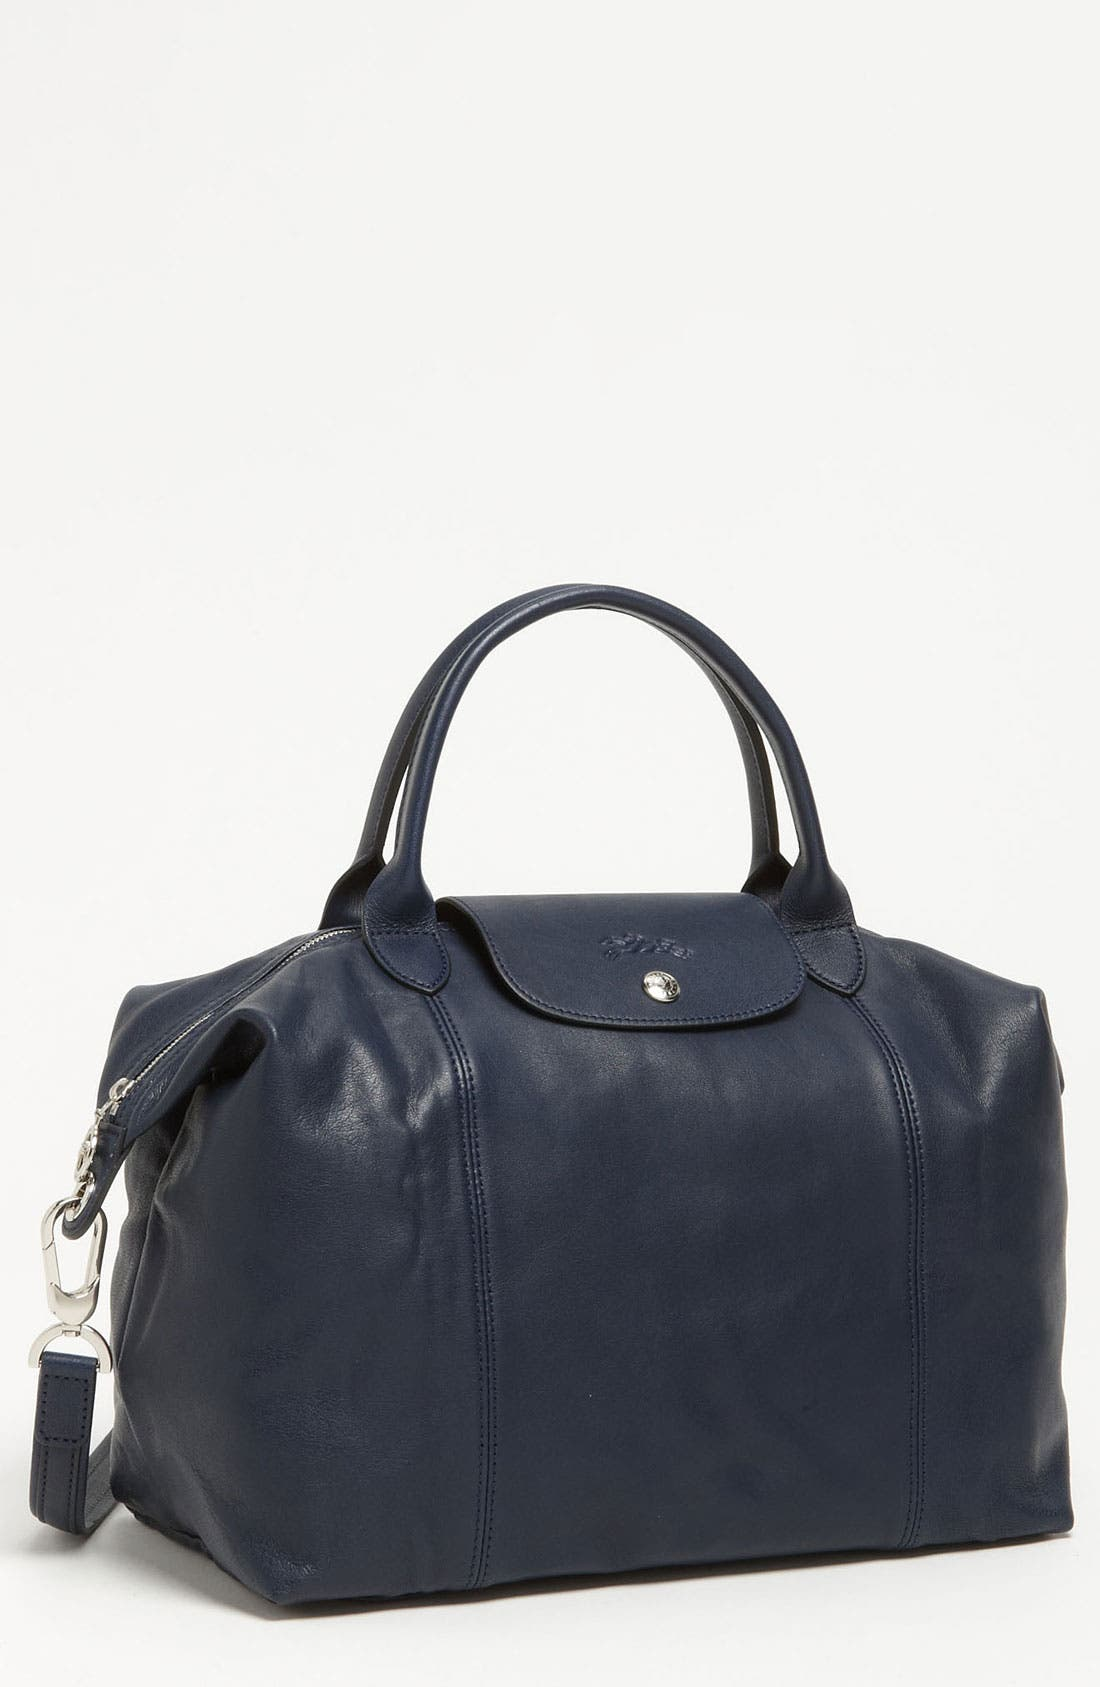 Medium 'Le Pliage Cuir' Leather Top Handle Tote,                             Main thumbnail 18, color,